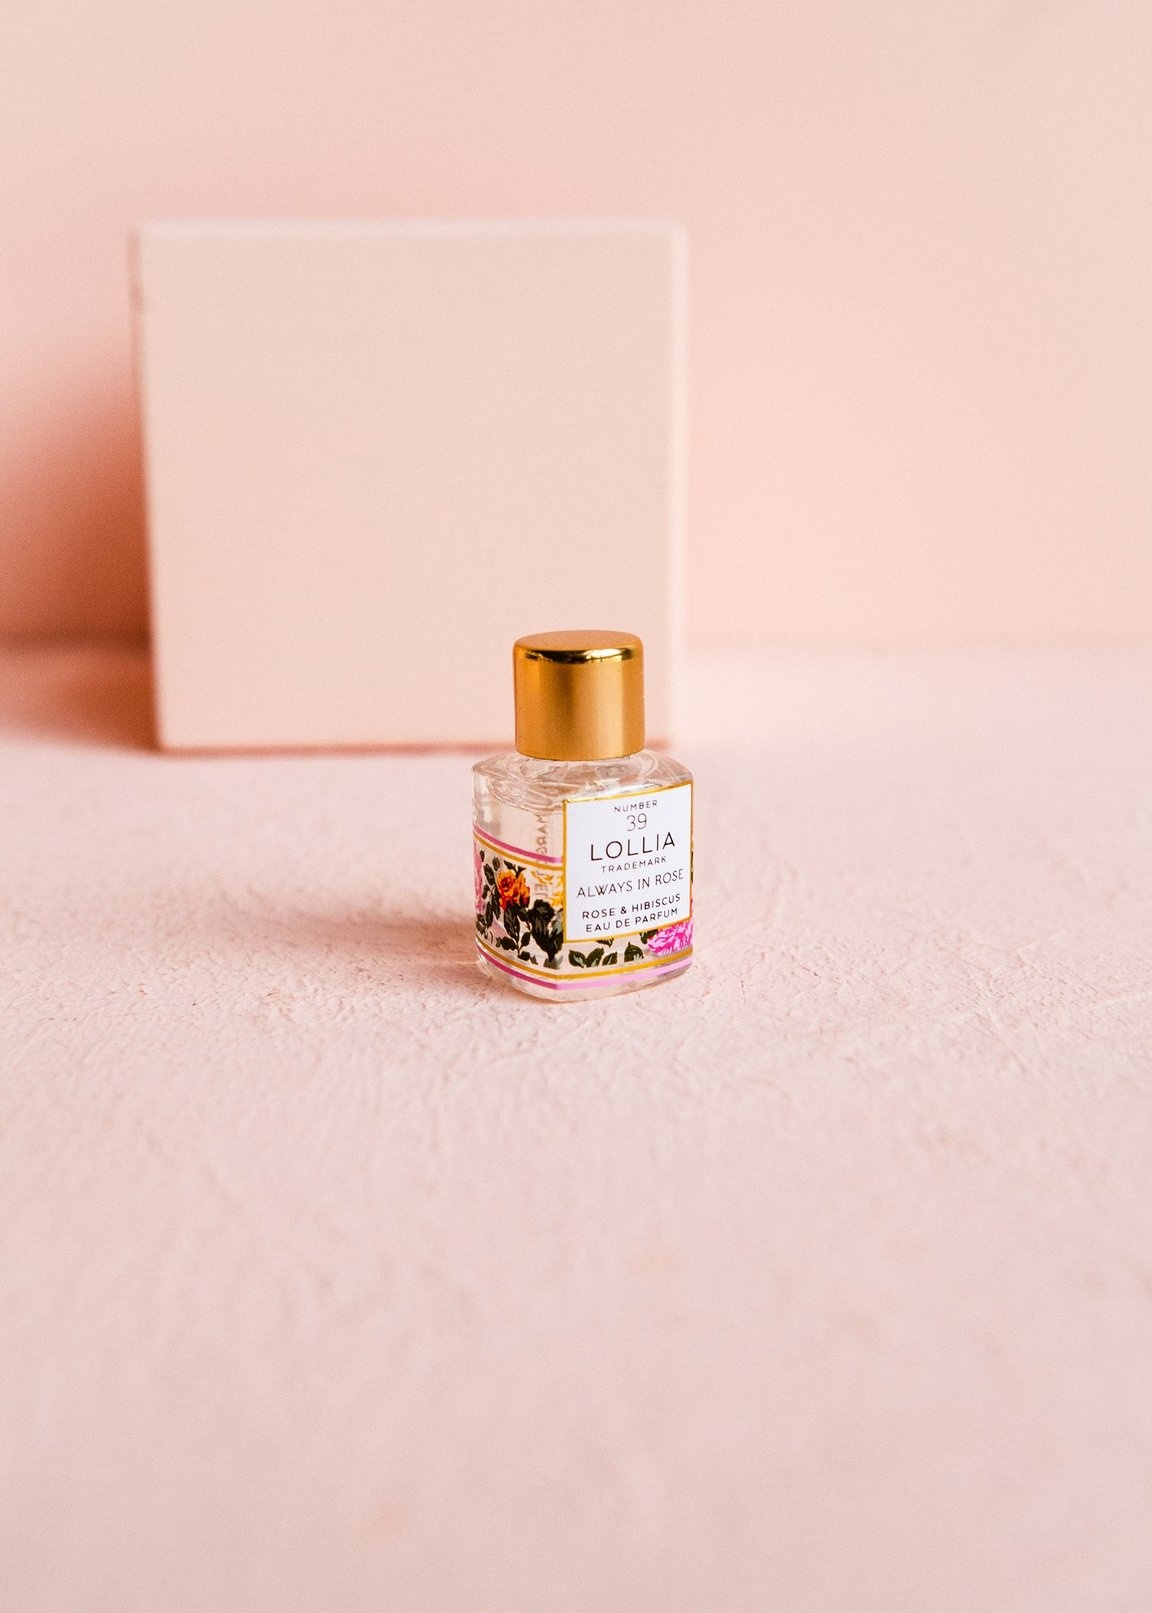 Lollia Always in Rose Little Luxe Perfume